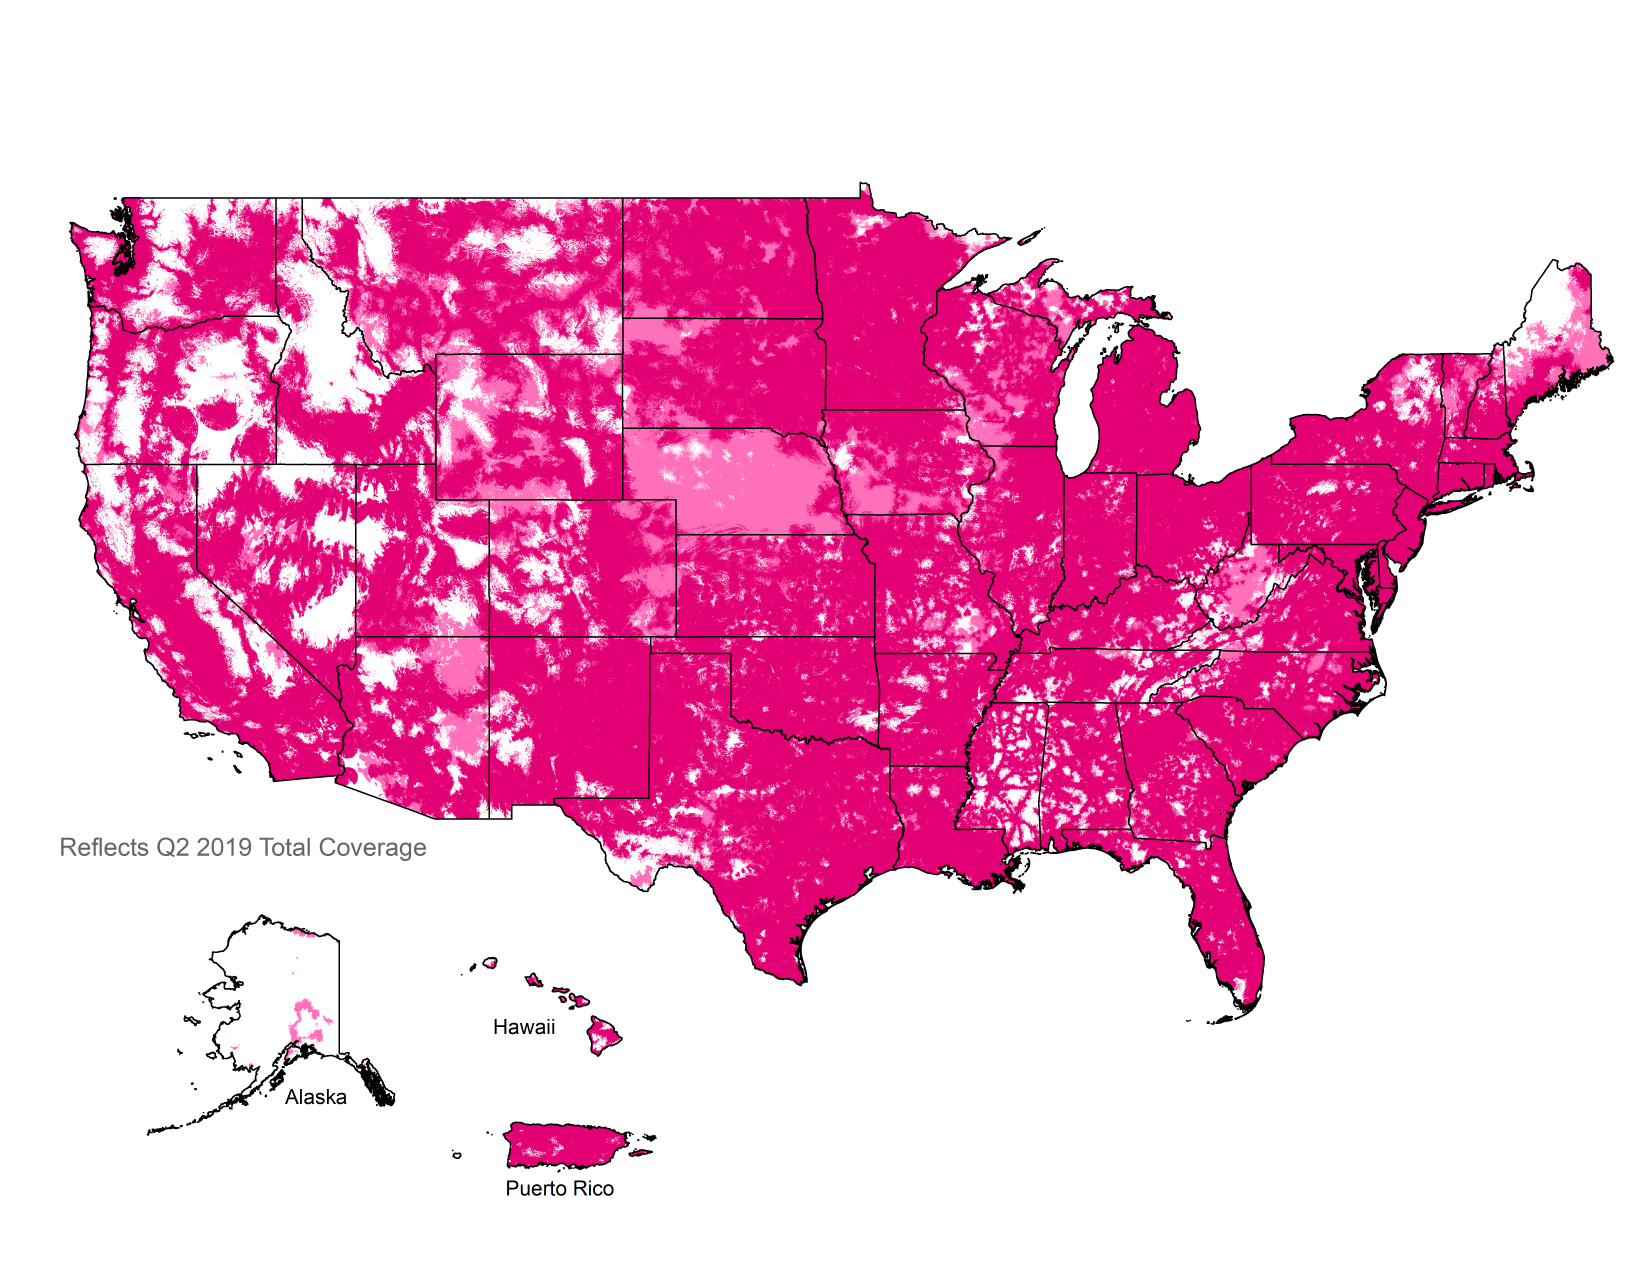 Tmobile Home Internet Plans 4g lte coverage map | check your 4g lte cell phone coverage | t-mobile